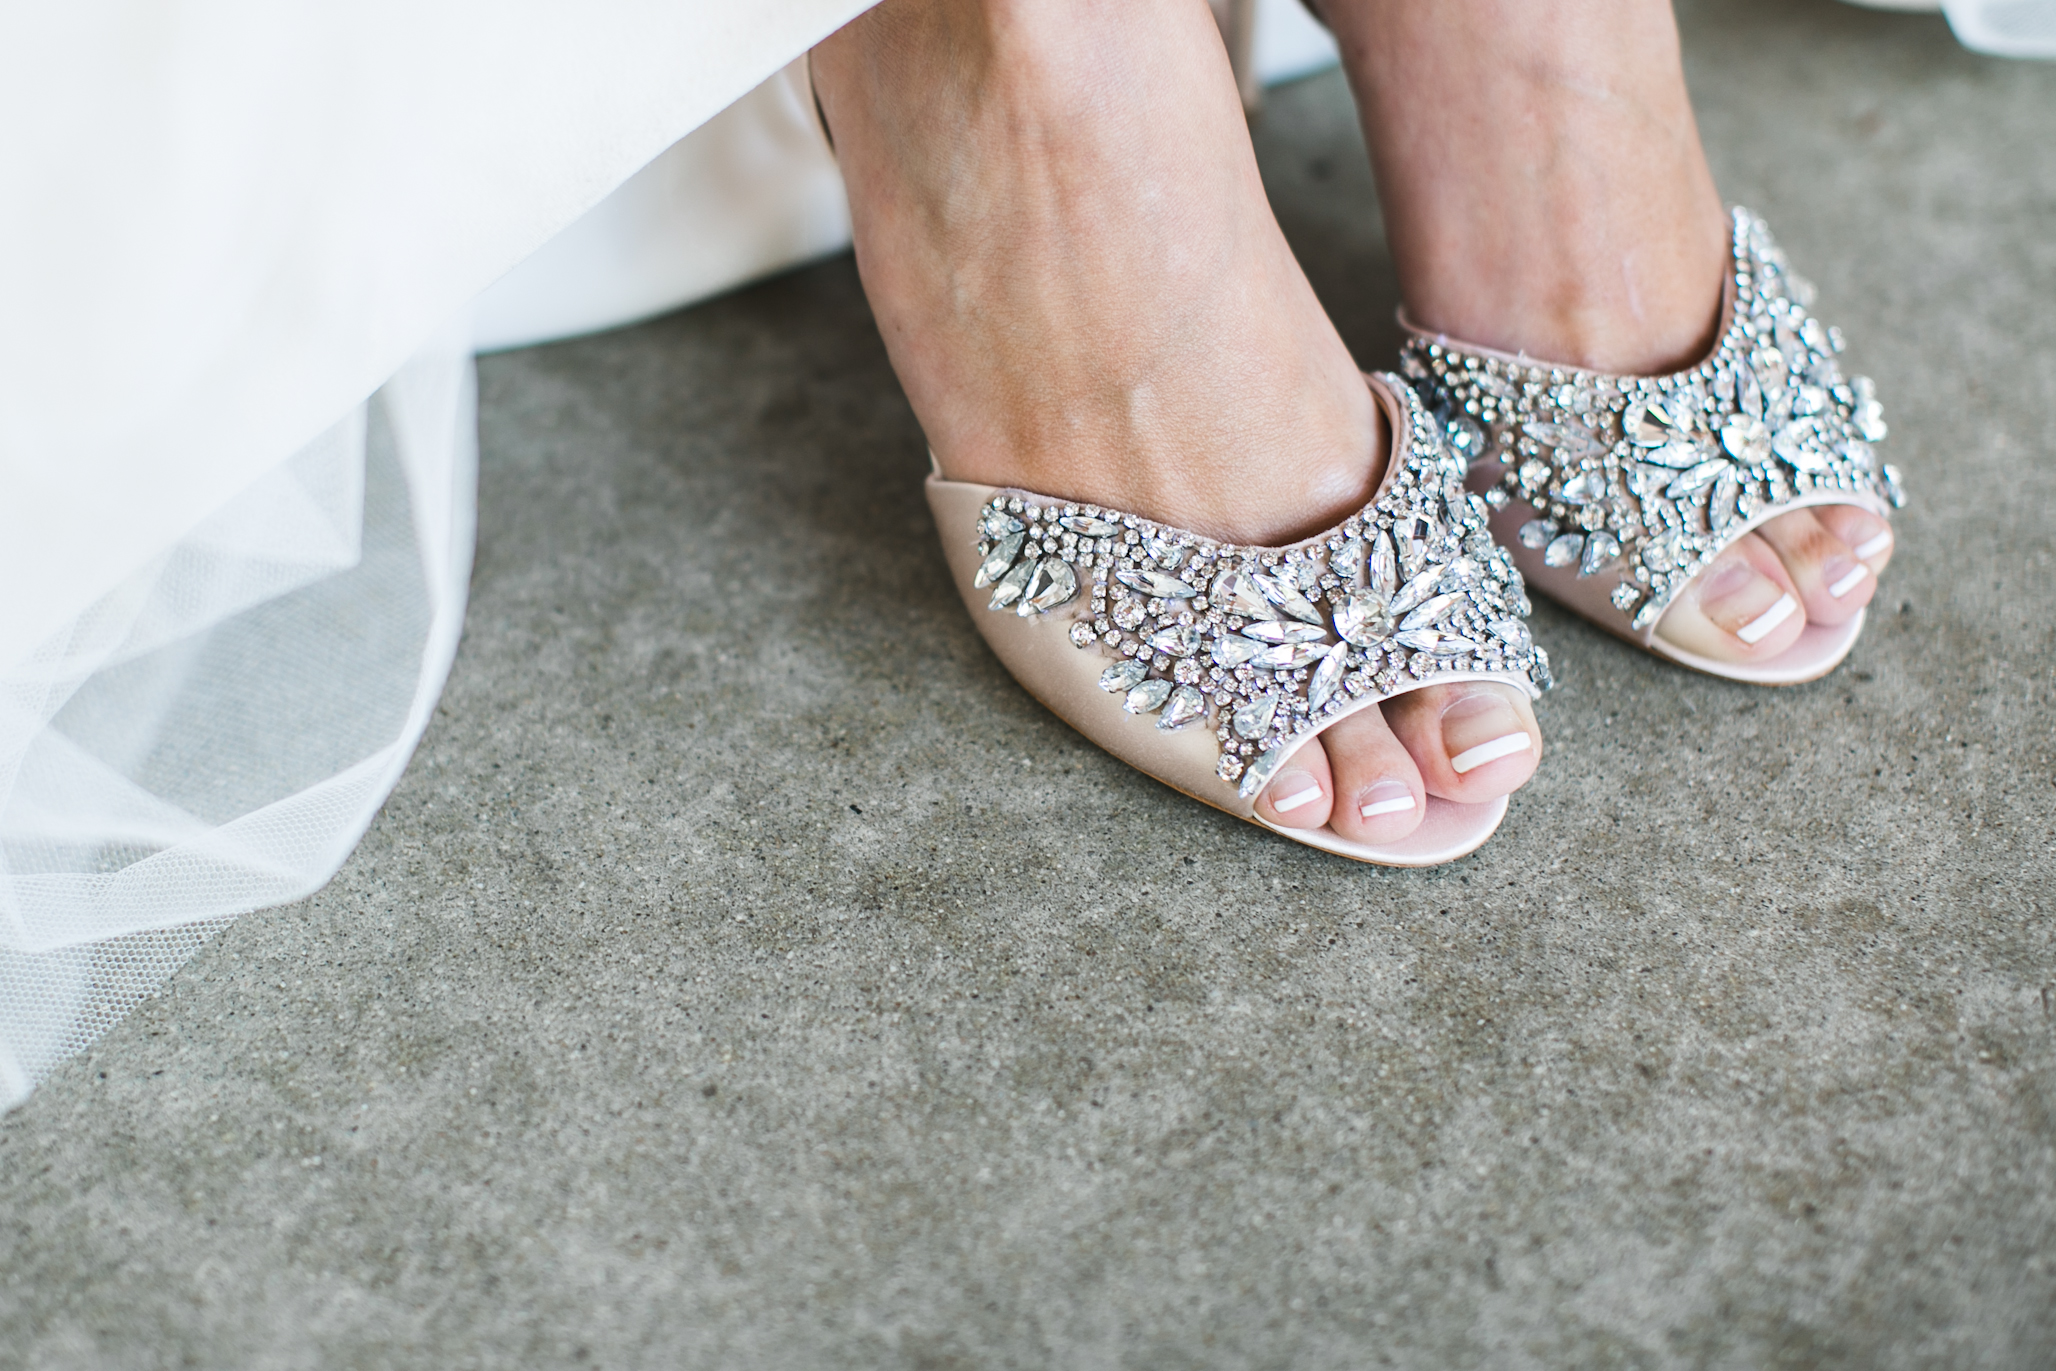 Even her toes are perfect! UGH. And these shoes!!!